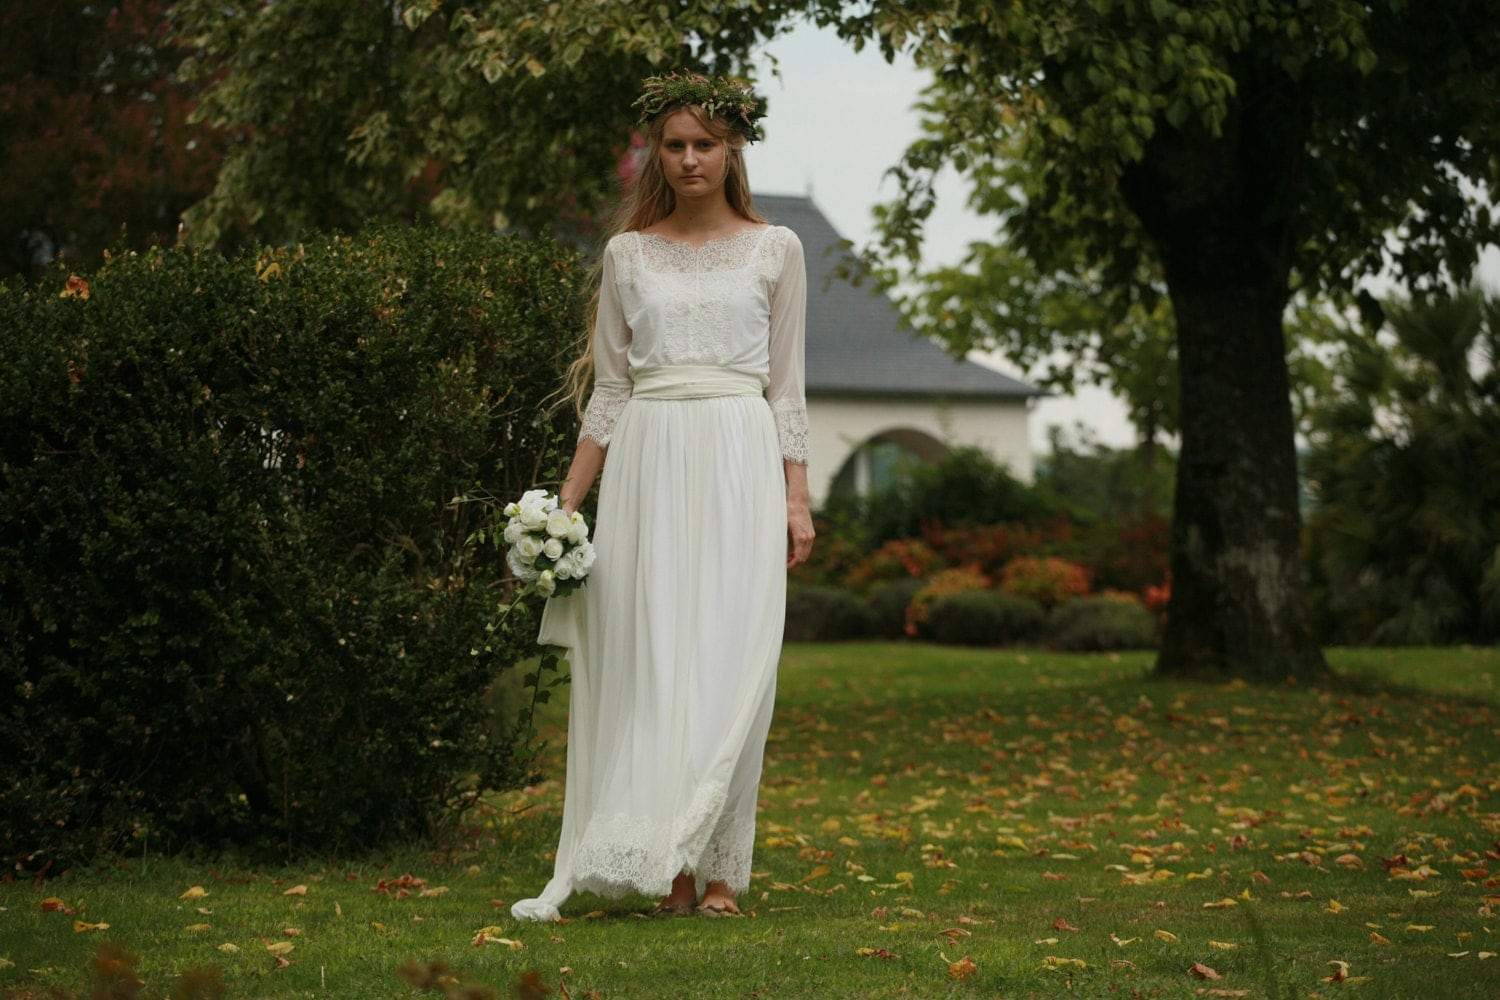 Simple Wedding Dresses With Lace Sleeves: Off White Lace And Tulle Bridal Gown Simple Boho Wedding